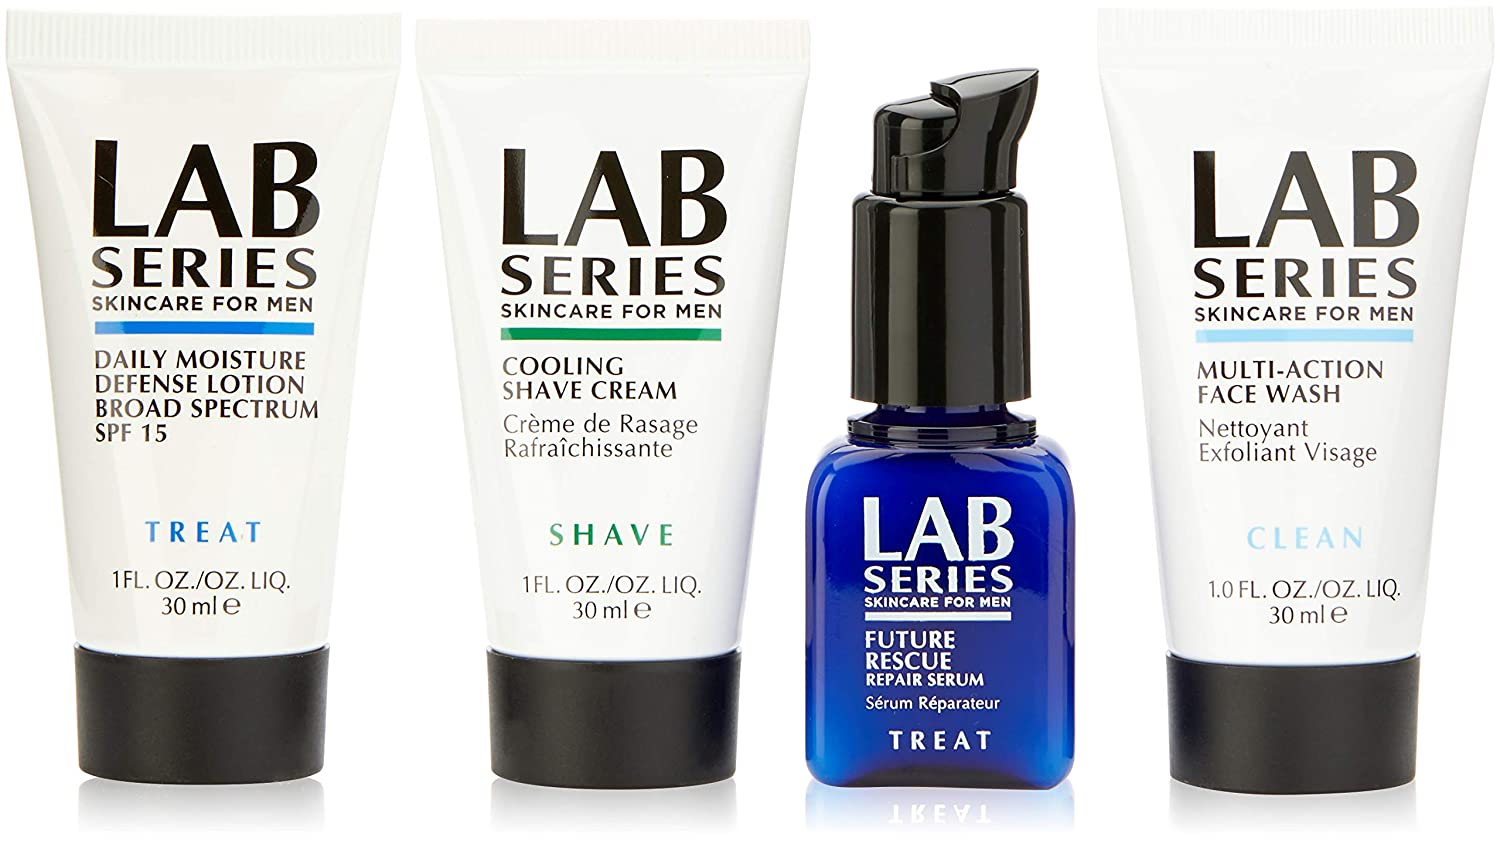 Lab Series Expert Skincare By Lab Series for Men - 4 Pc Kit 1oz Multi Action Face Wash, 1oz Cooling Shave Cream, 1oz Moisture Defense Lotion, 0.5oz Future Rescue Repair Serum, 4count